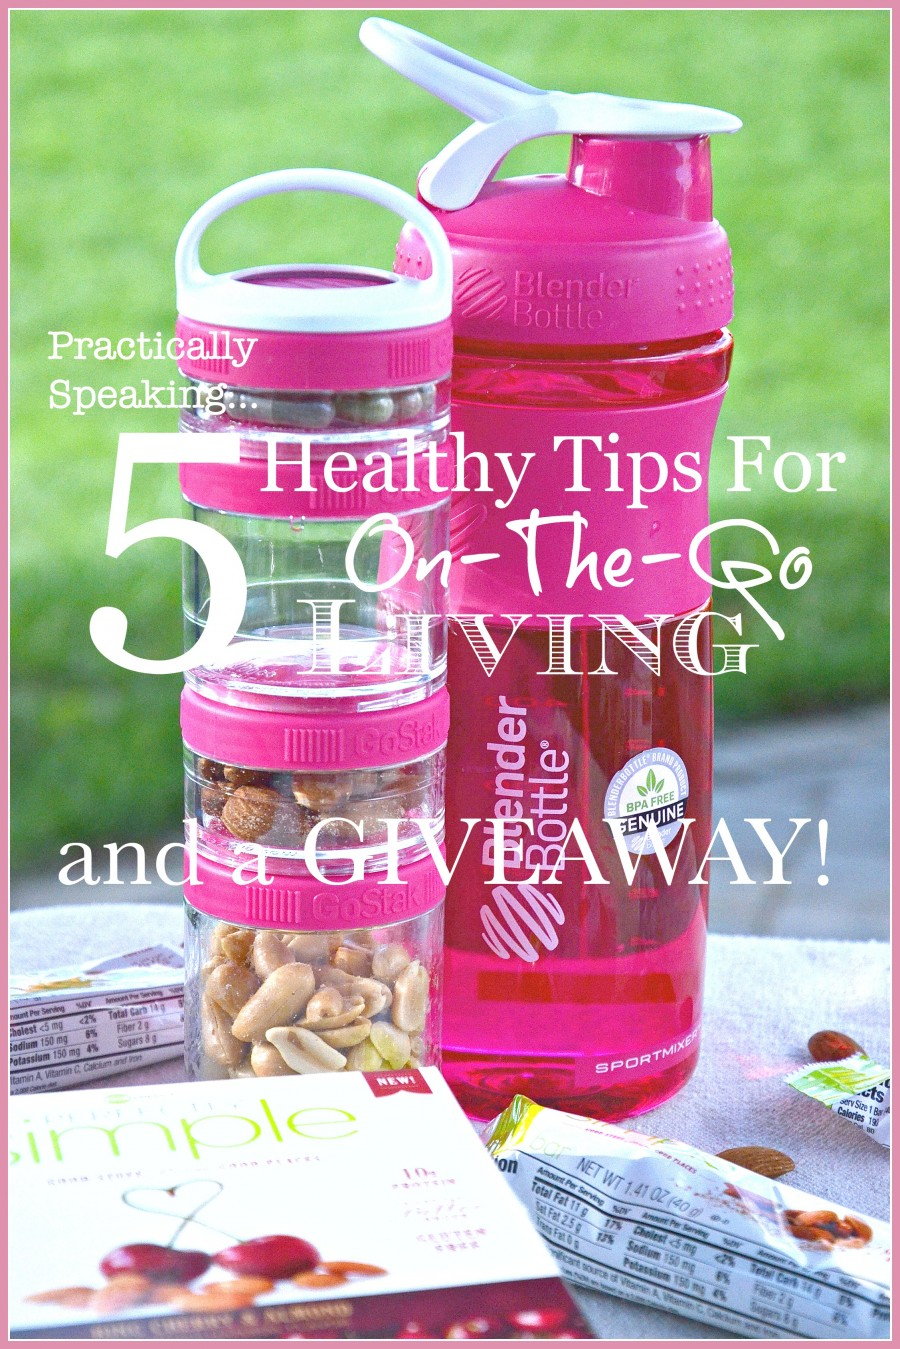 5 HEALTHY TIPS FOR ON-THE-GO LIVING AND A GREAT GIVEAWAY